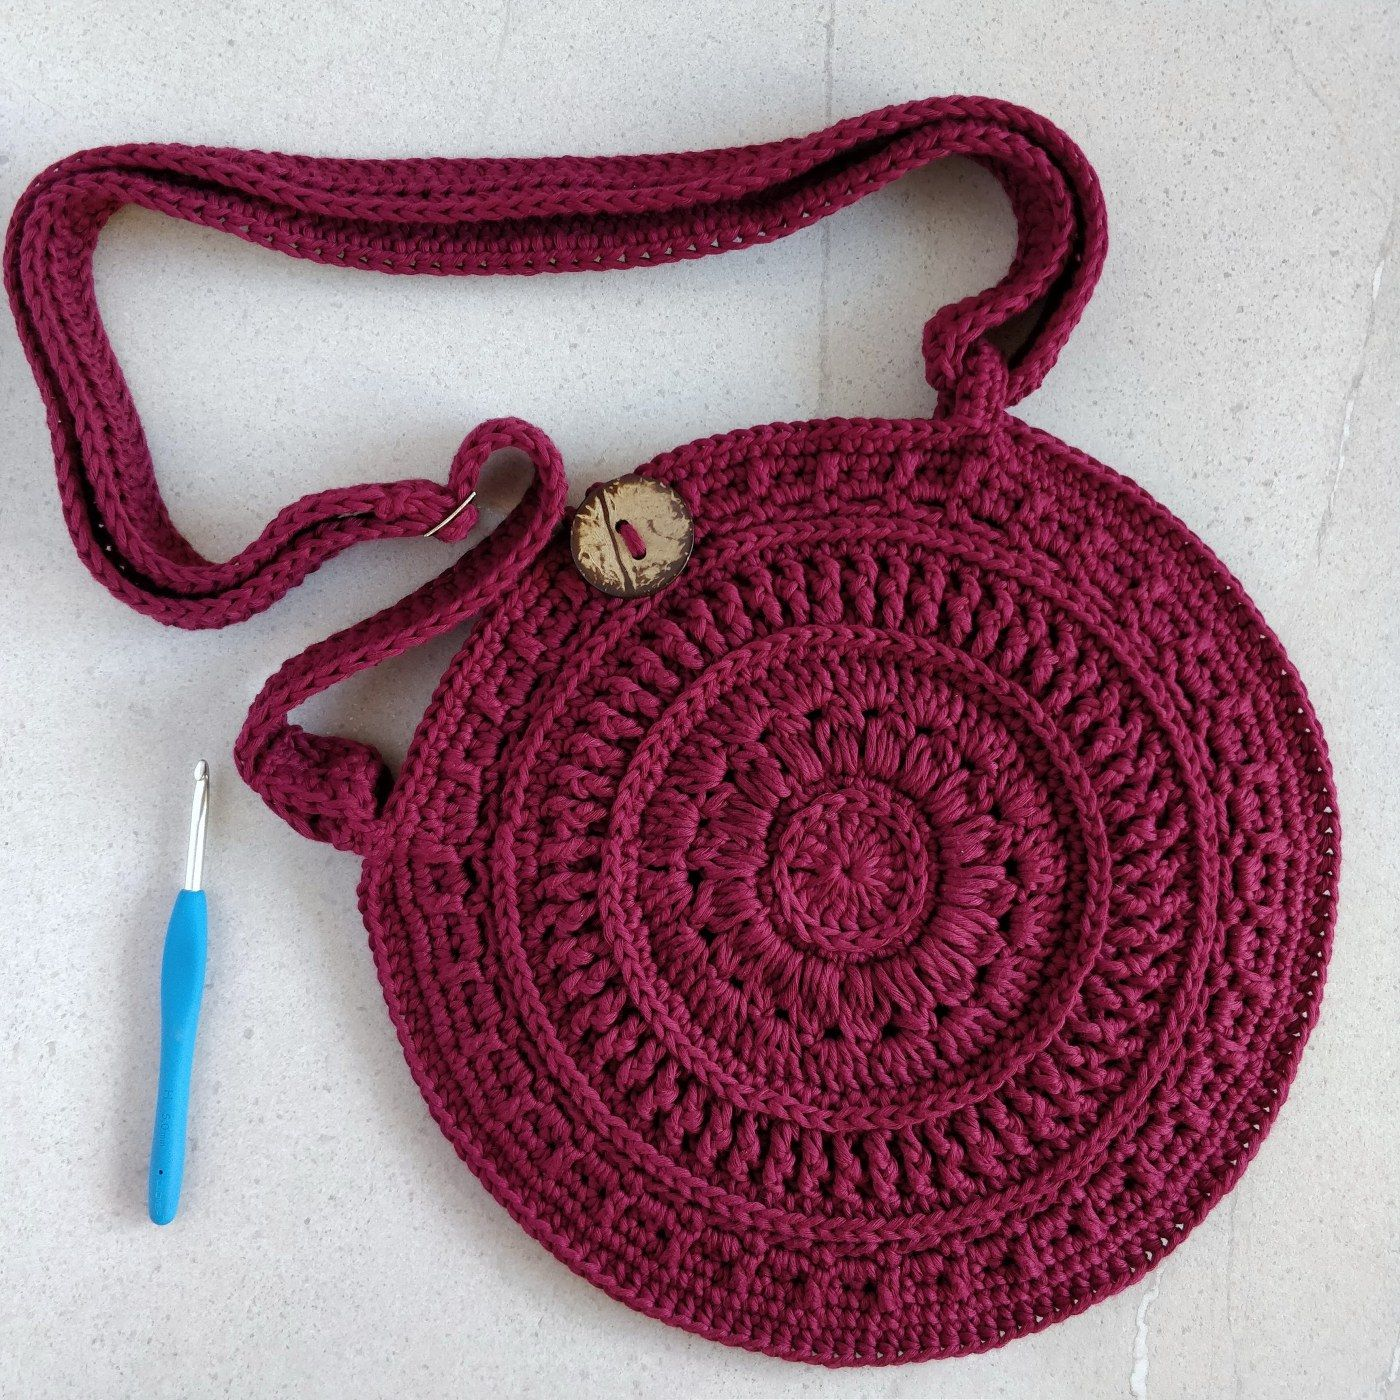 Boho Crochet Bags – how to make your own OOAK bag